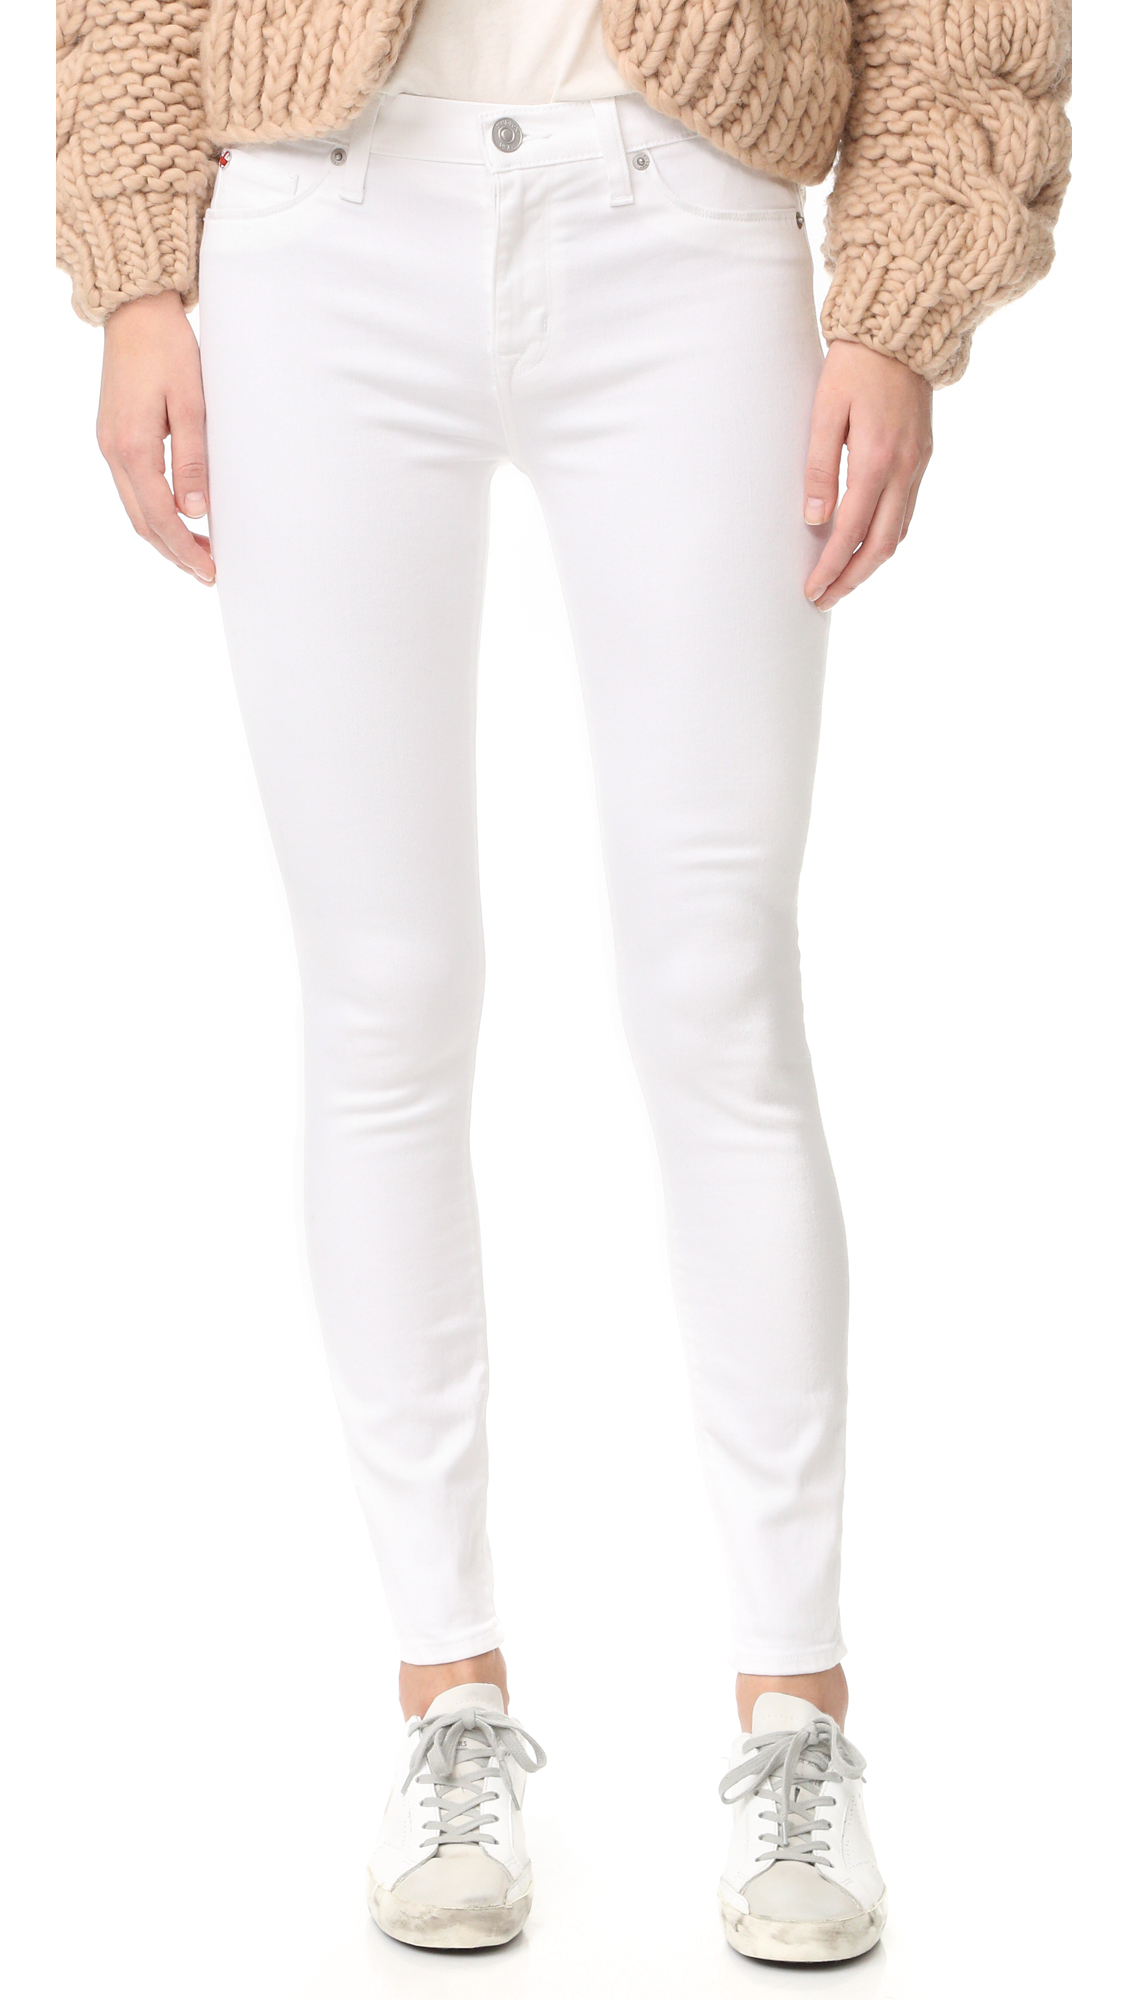 Hudson Nico Mid Rise Super Skinny Ankle Jeans - White at Shopbop